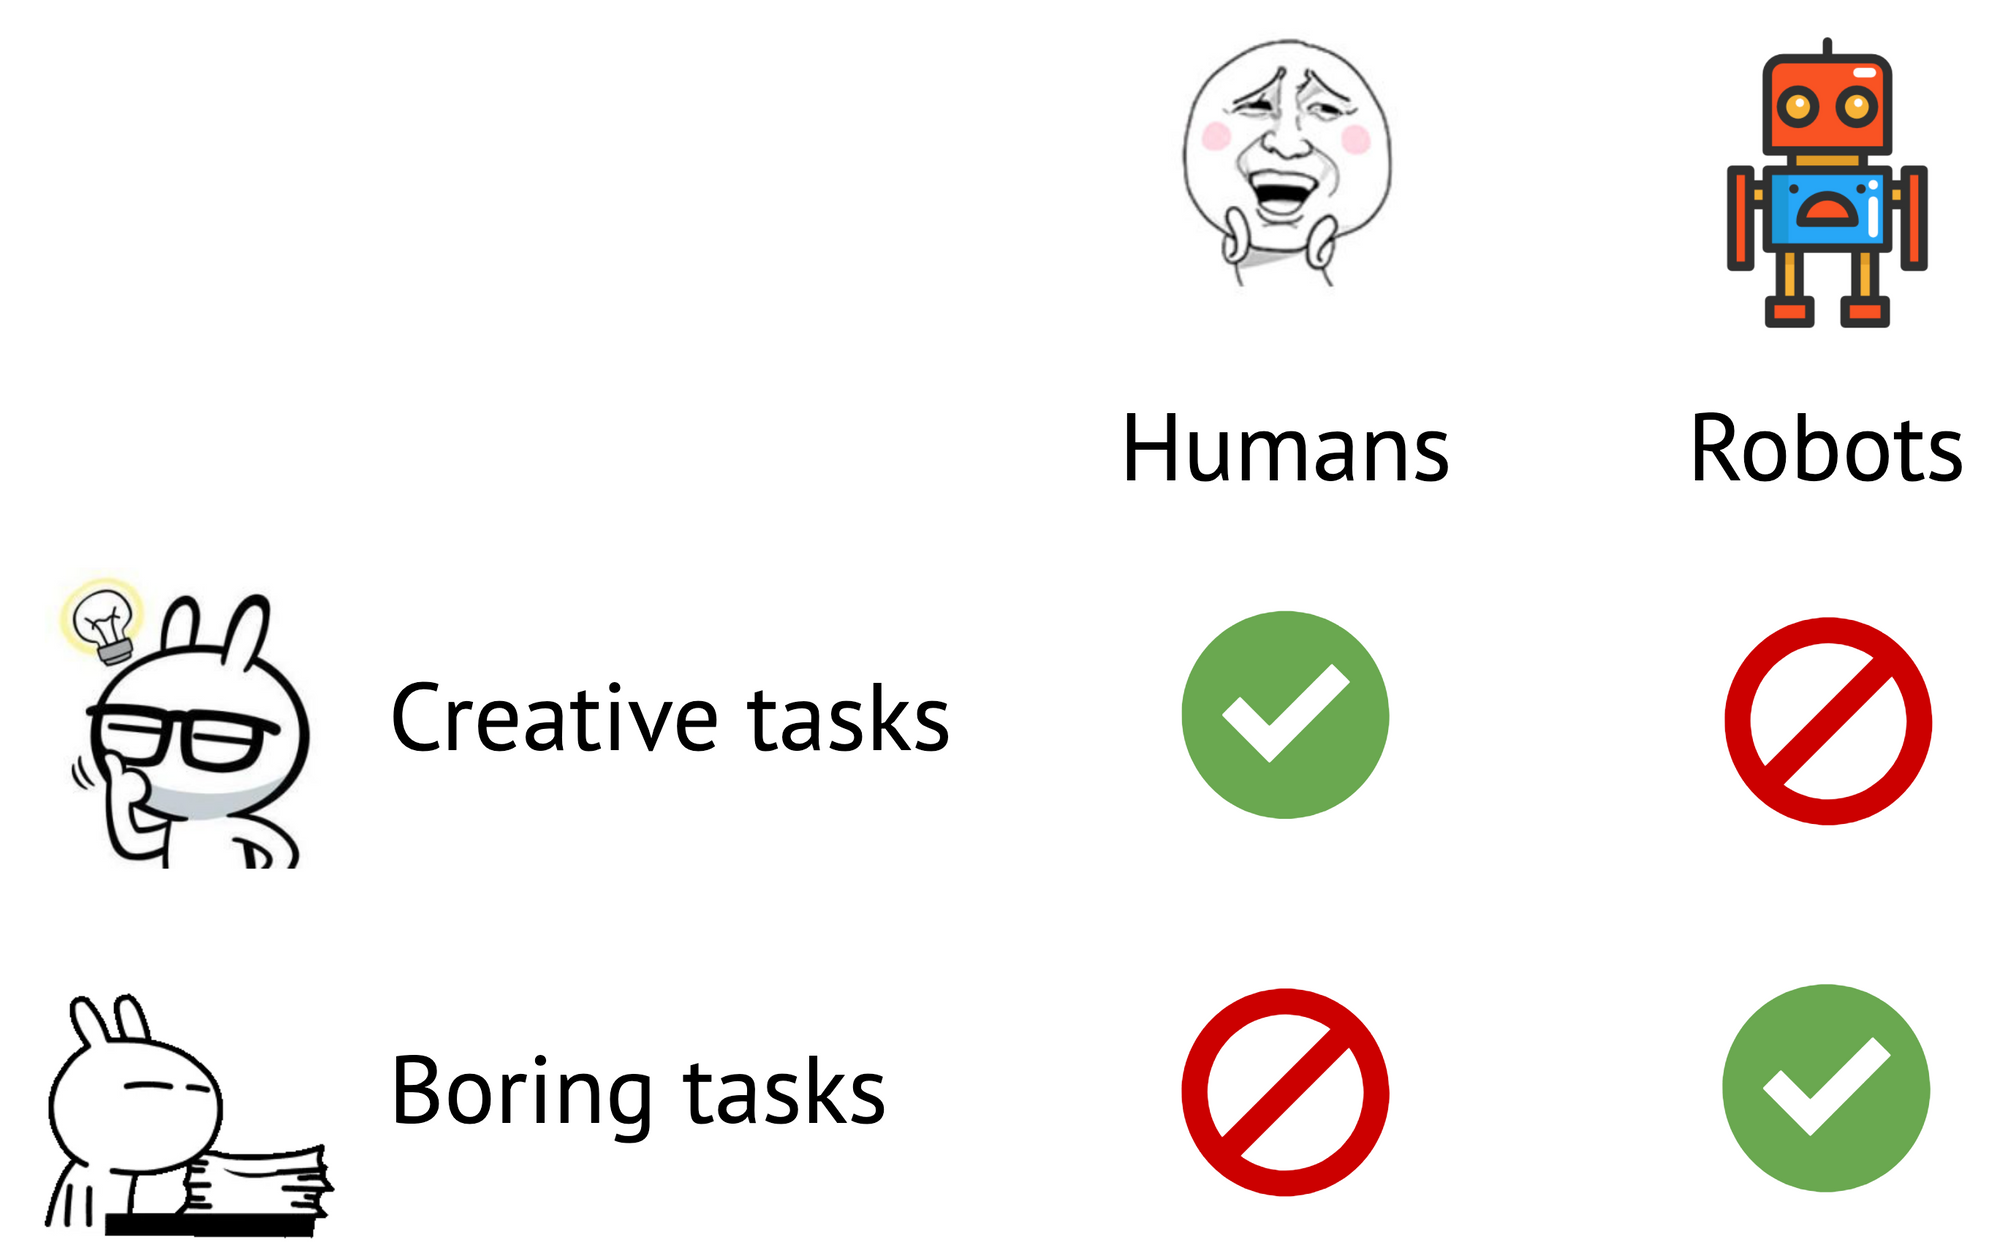 A silly chart showing that humans excel at creative tasks while robots excel at boring tasks.